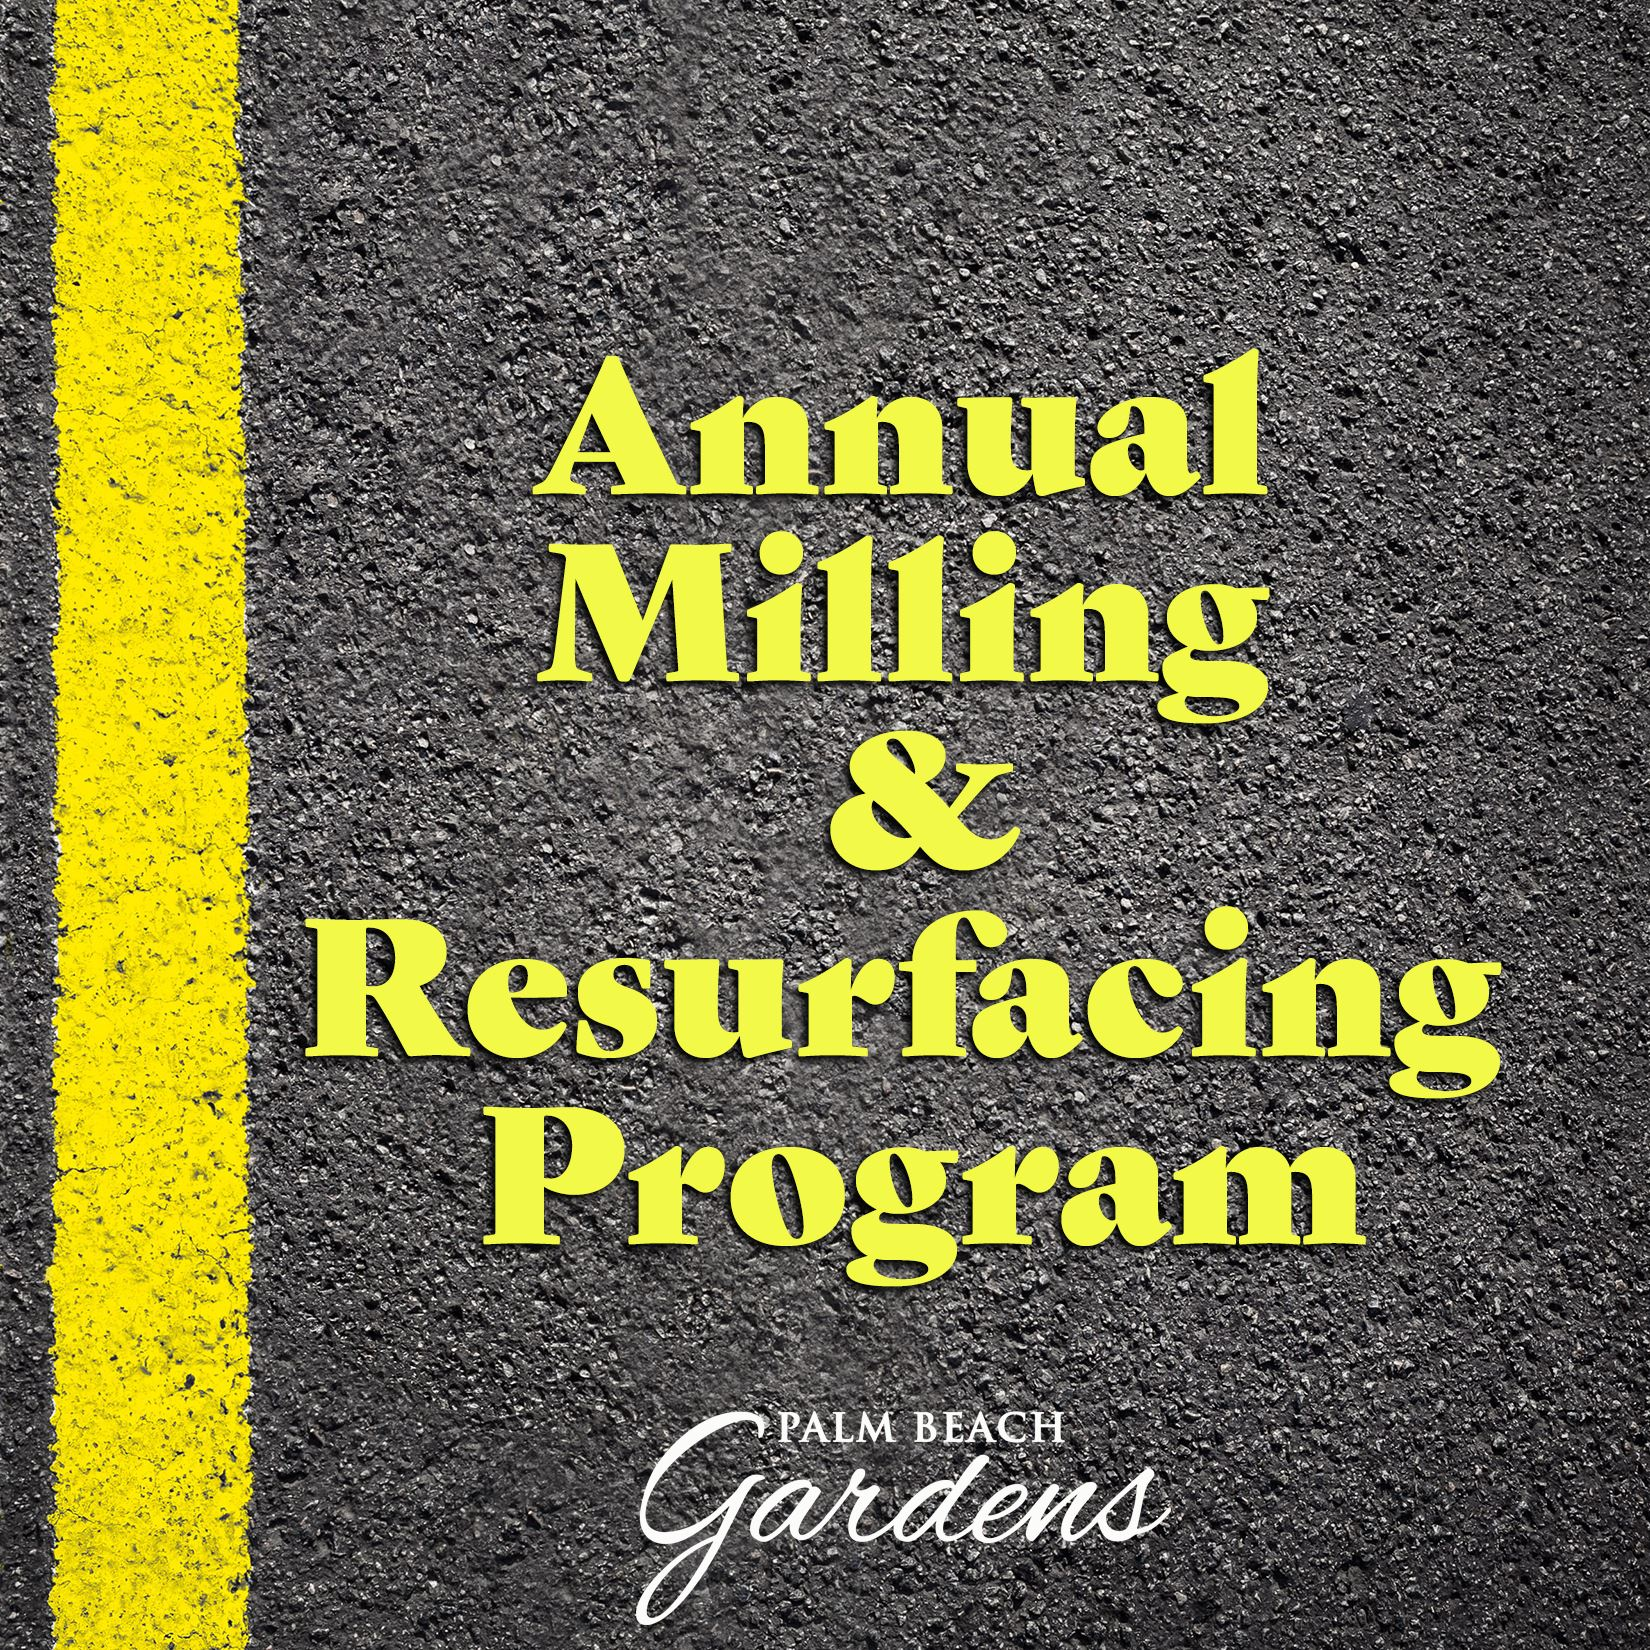 Annual Milling and Resurfacing